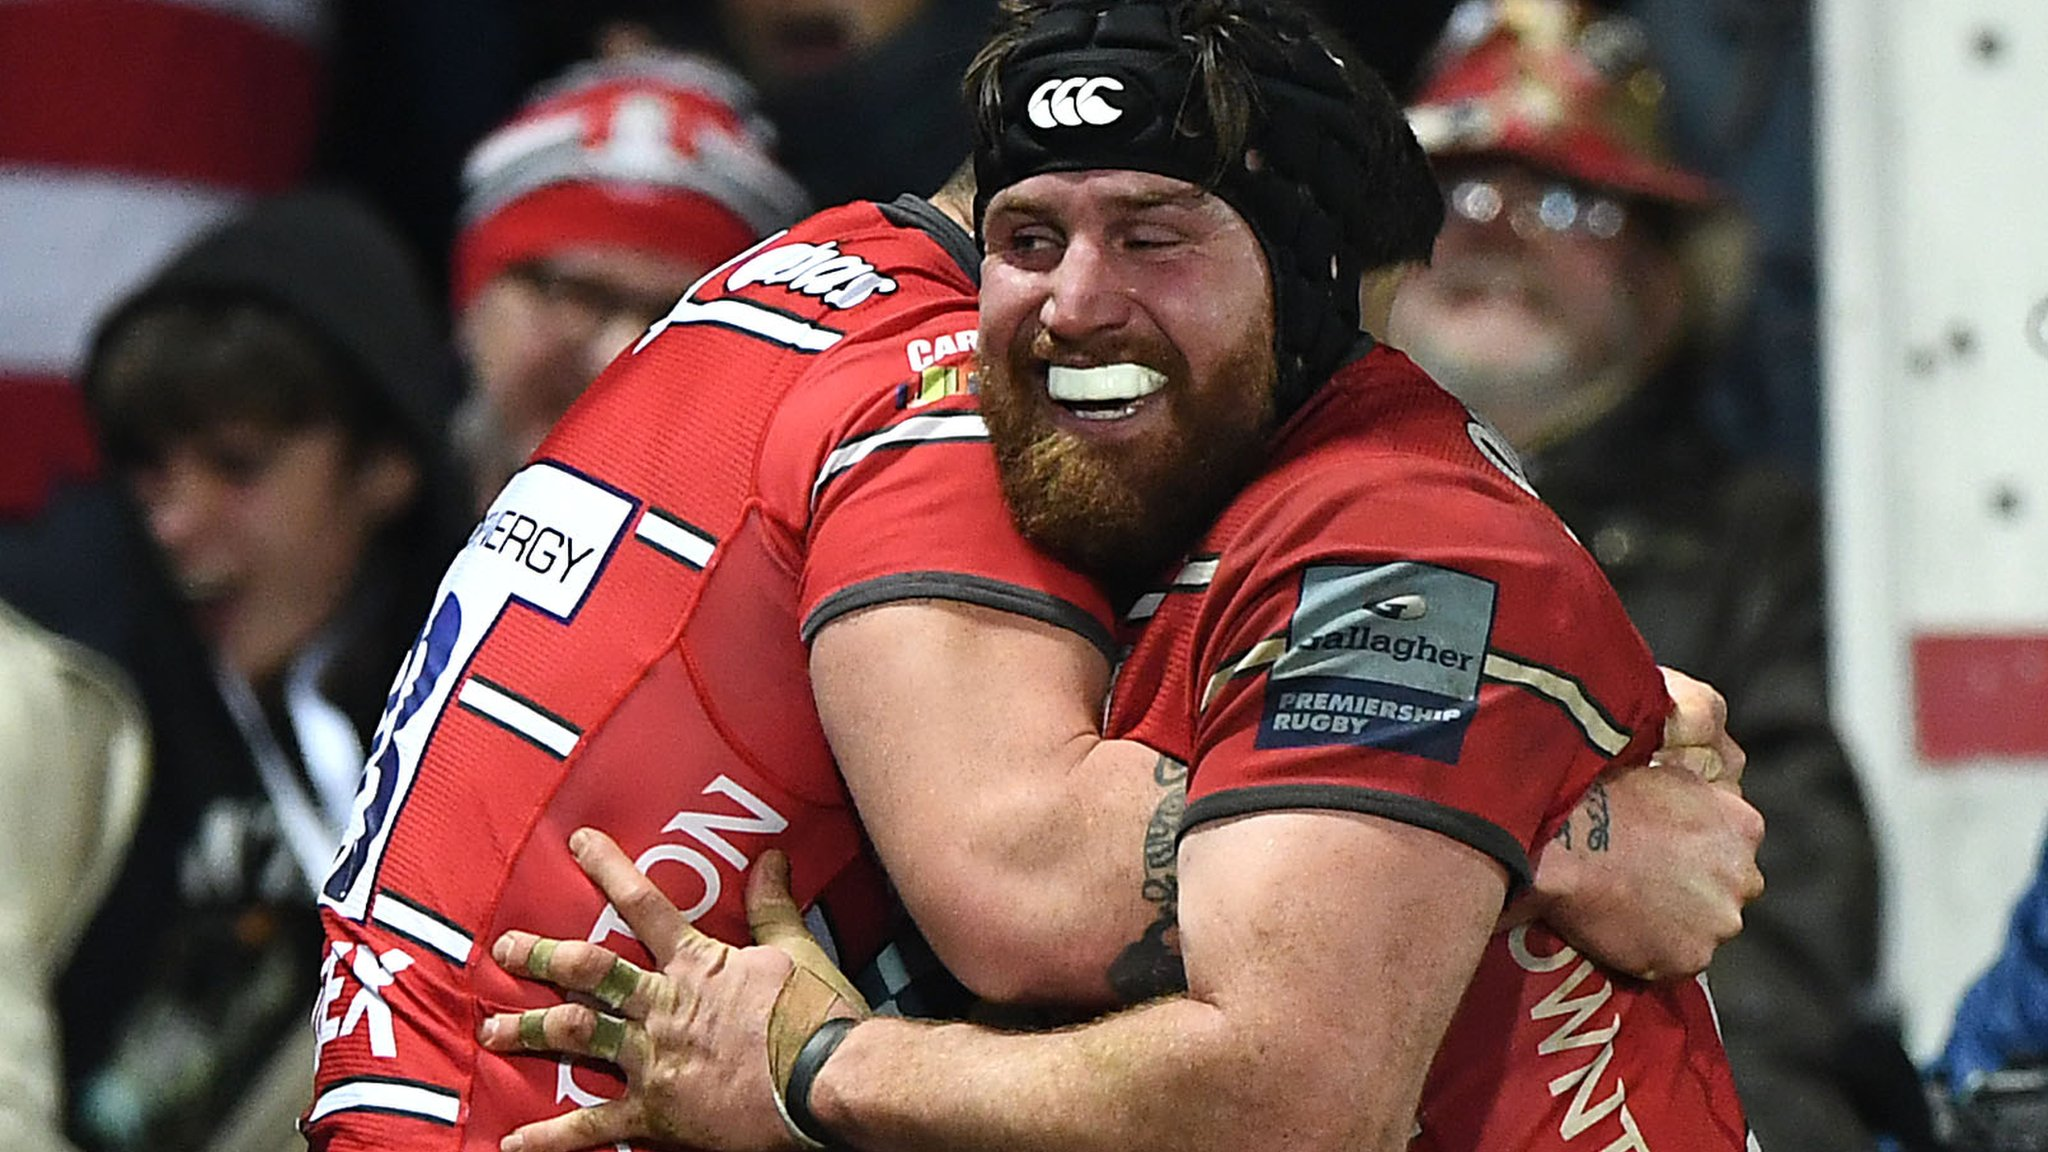 Premiership: Gloucester beat leaders Exeter 24-17 at Kingsholm